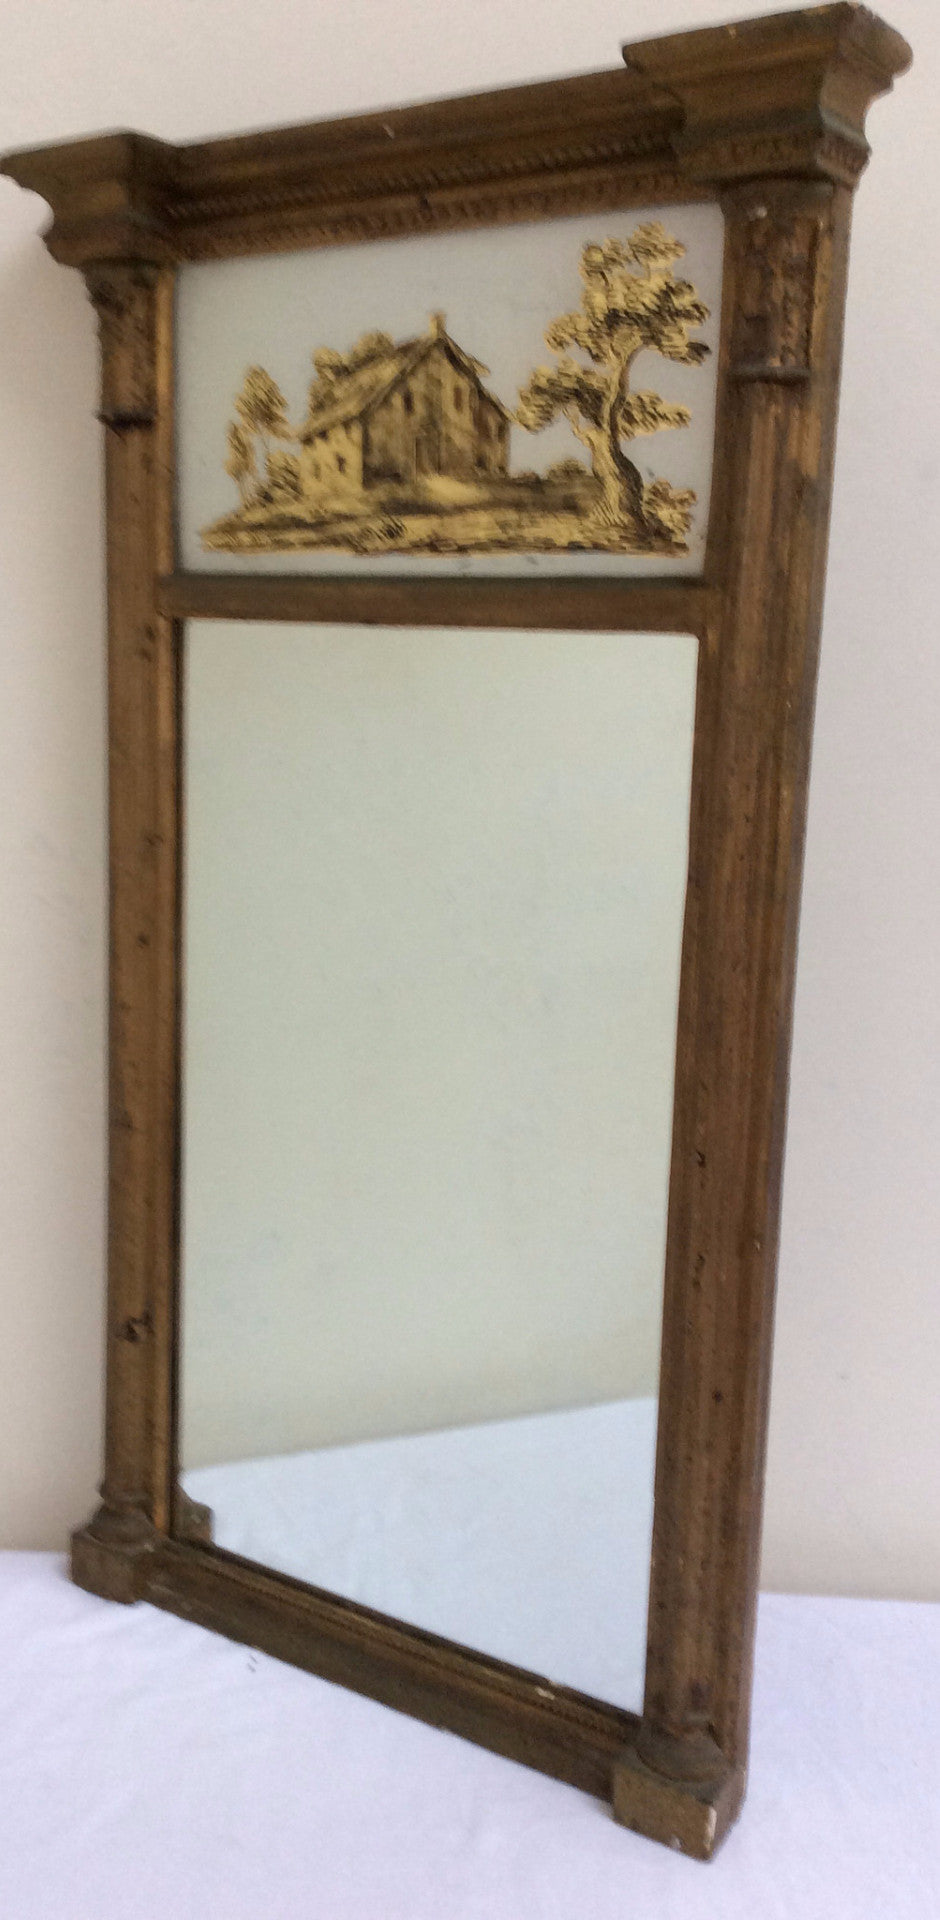 Early American Mirror with eglomise panel section circa 1820